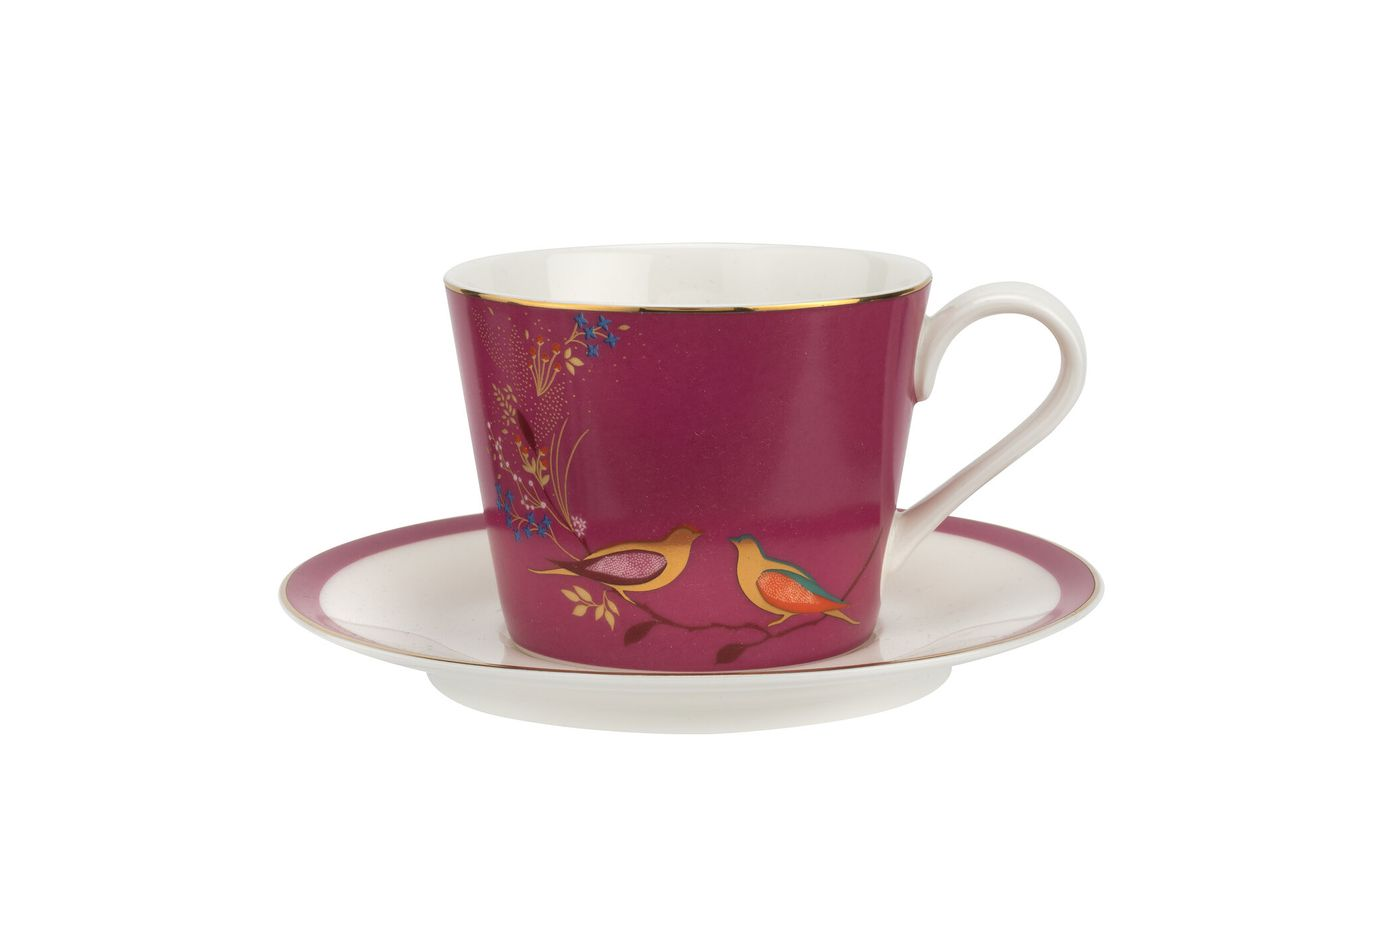 Sara Miller London for Portmeirion Chelsea Collection Tea For Two thumb 2